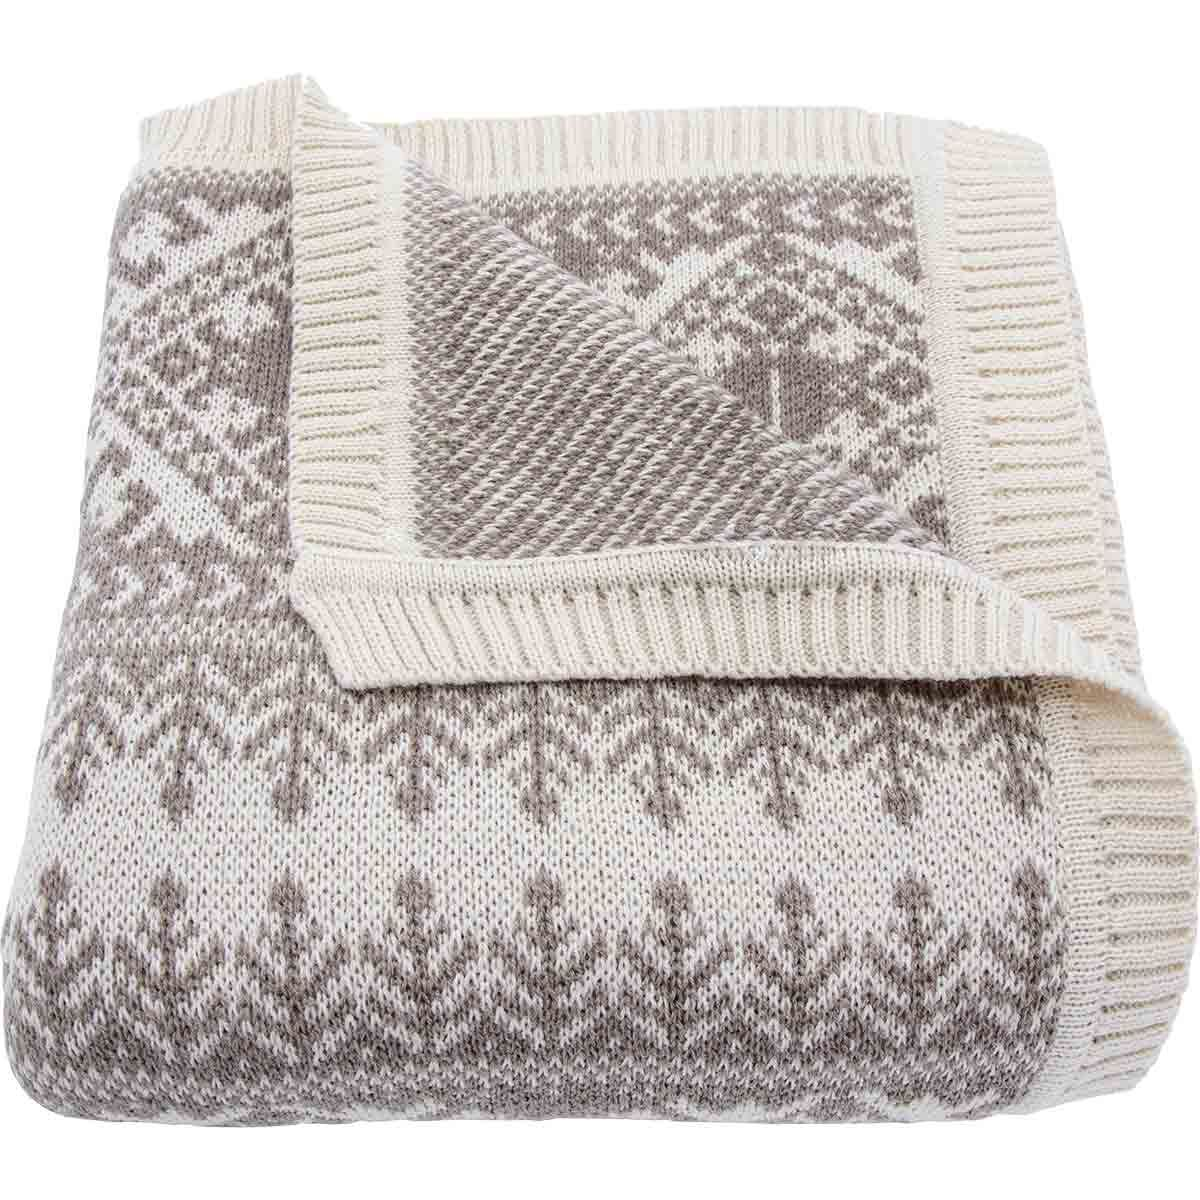 Tribal Knit Throw